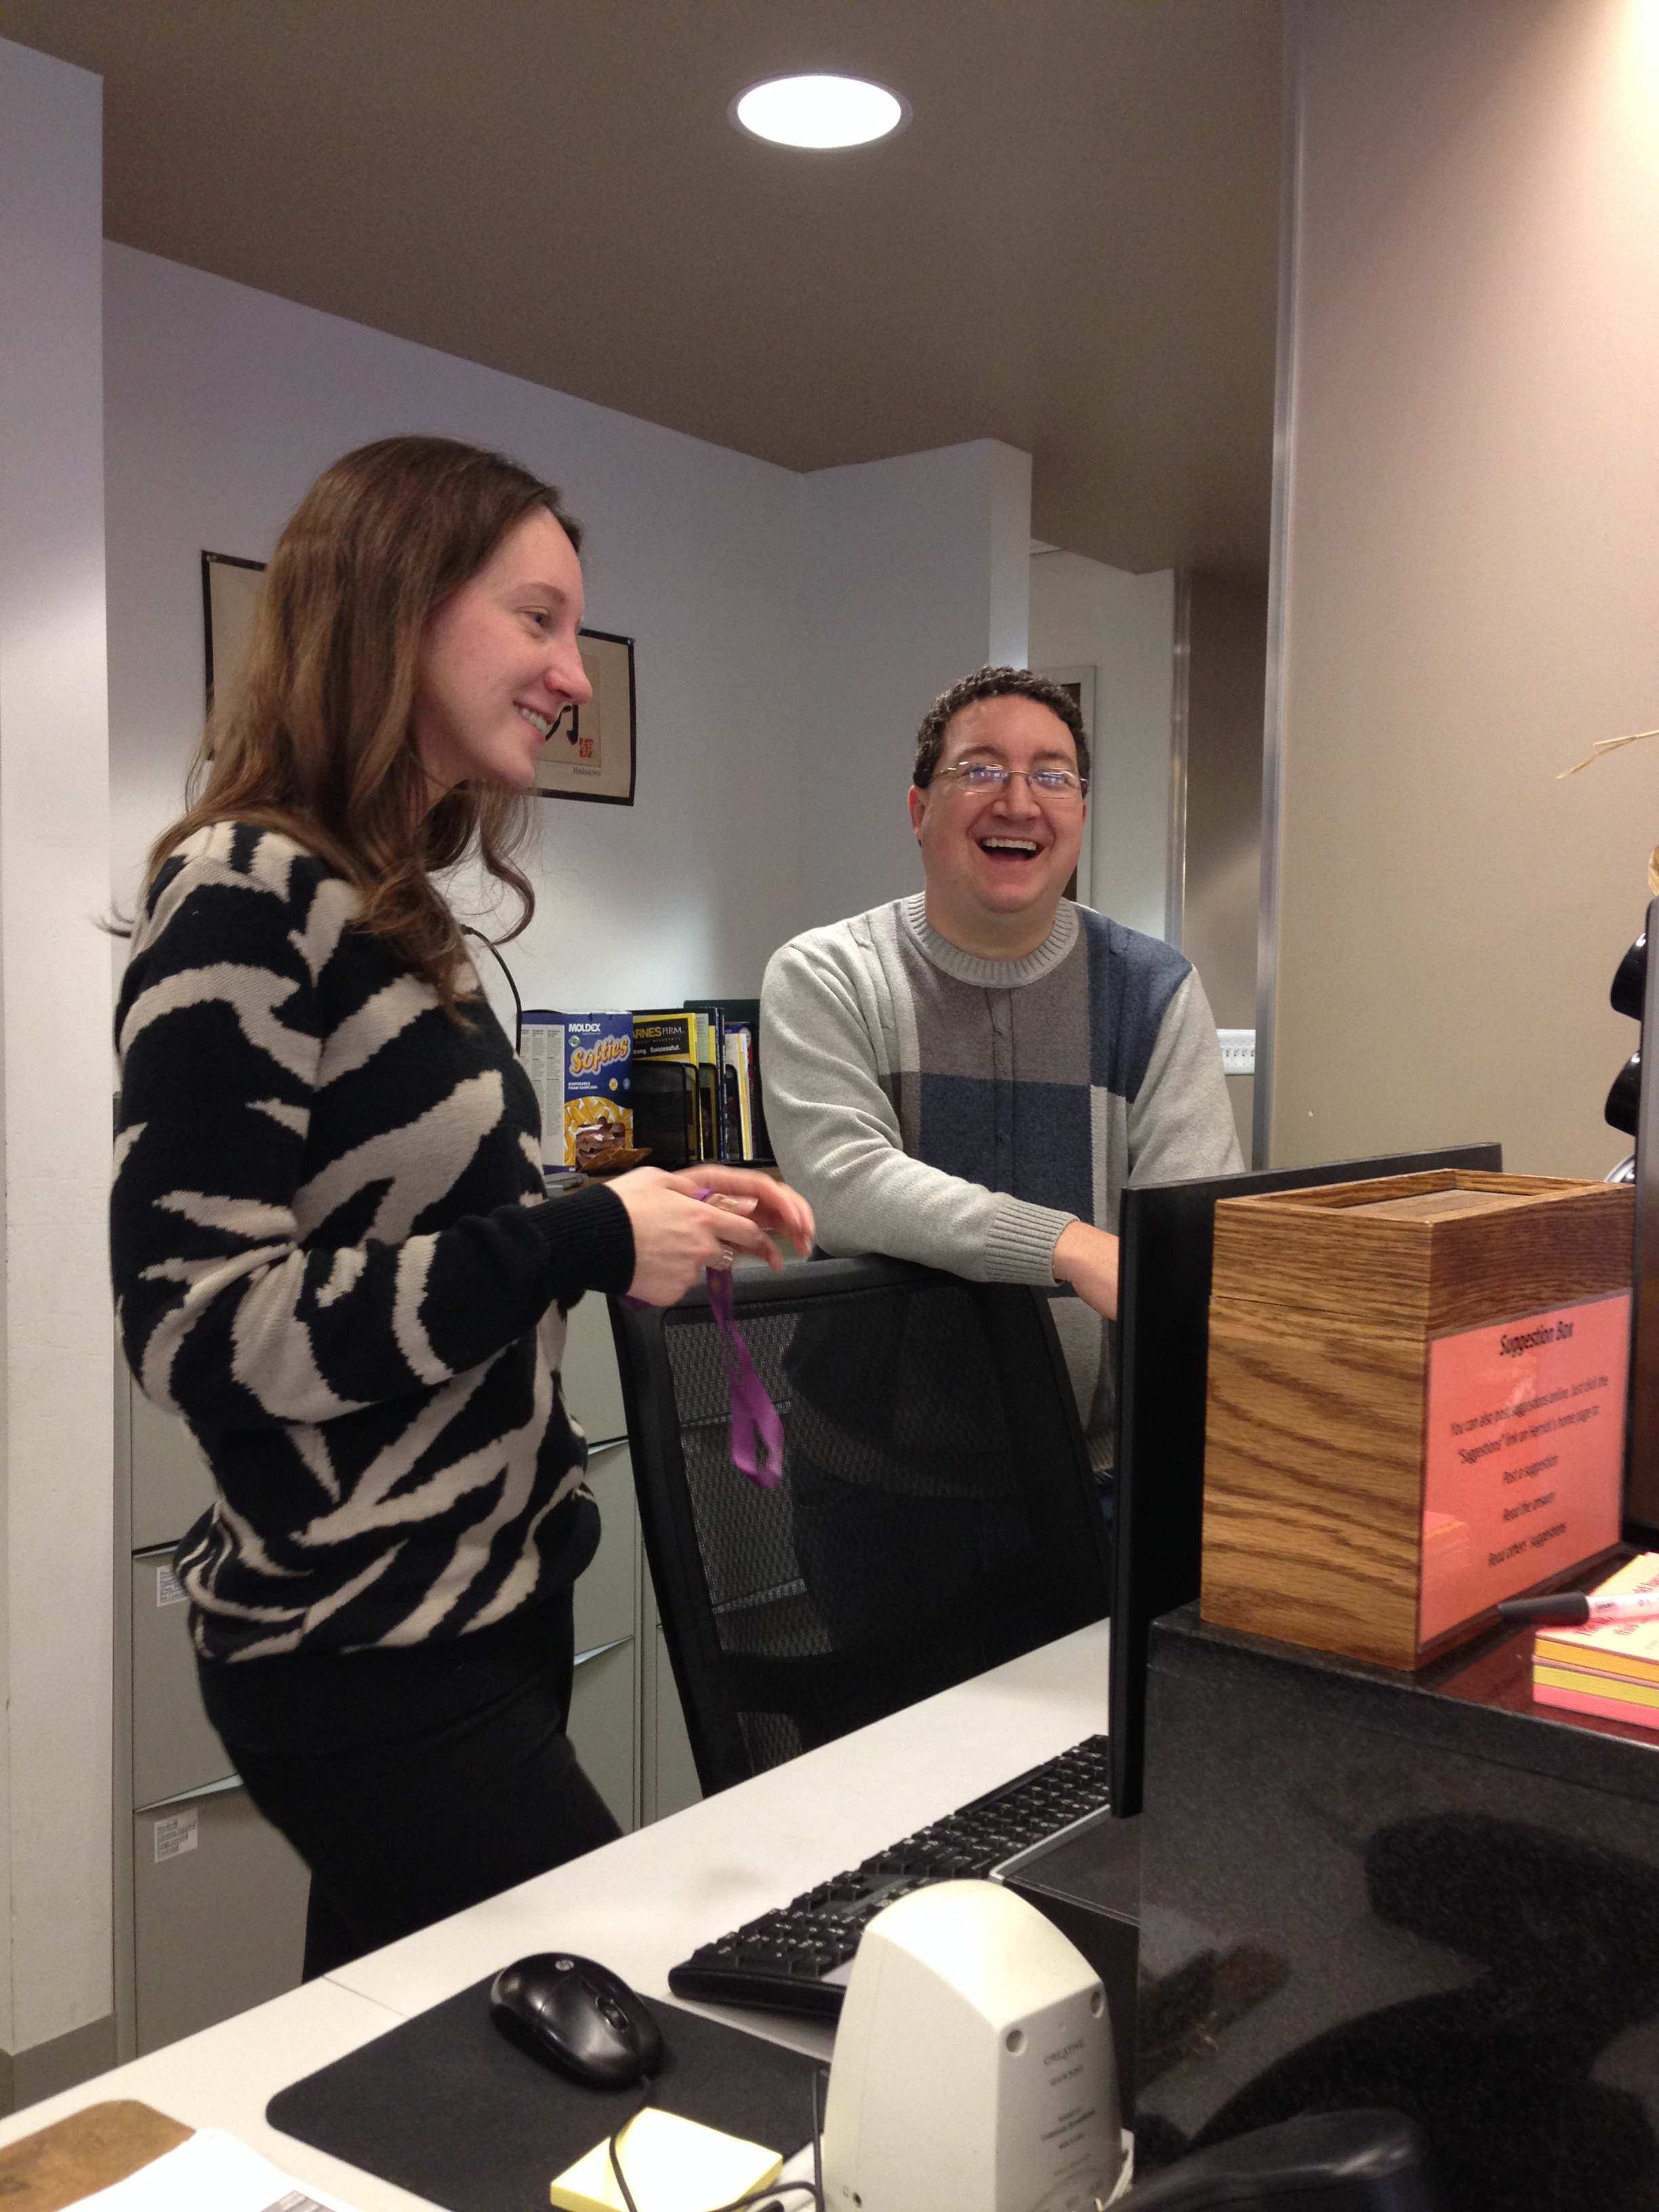 Brian and Natalie at Herrick's front desk